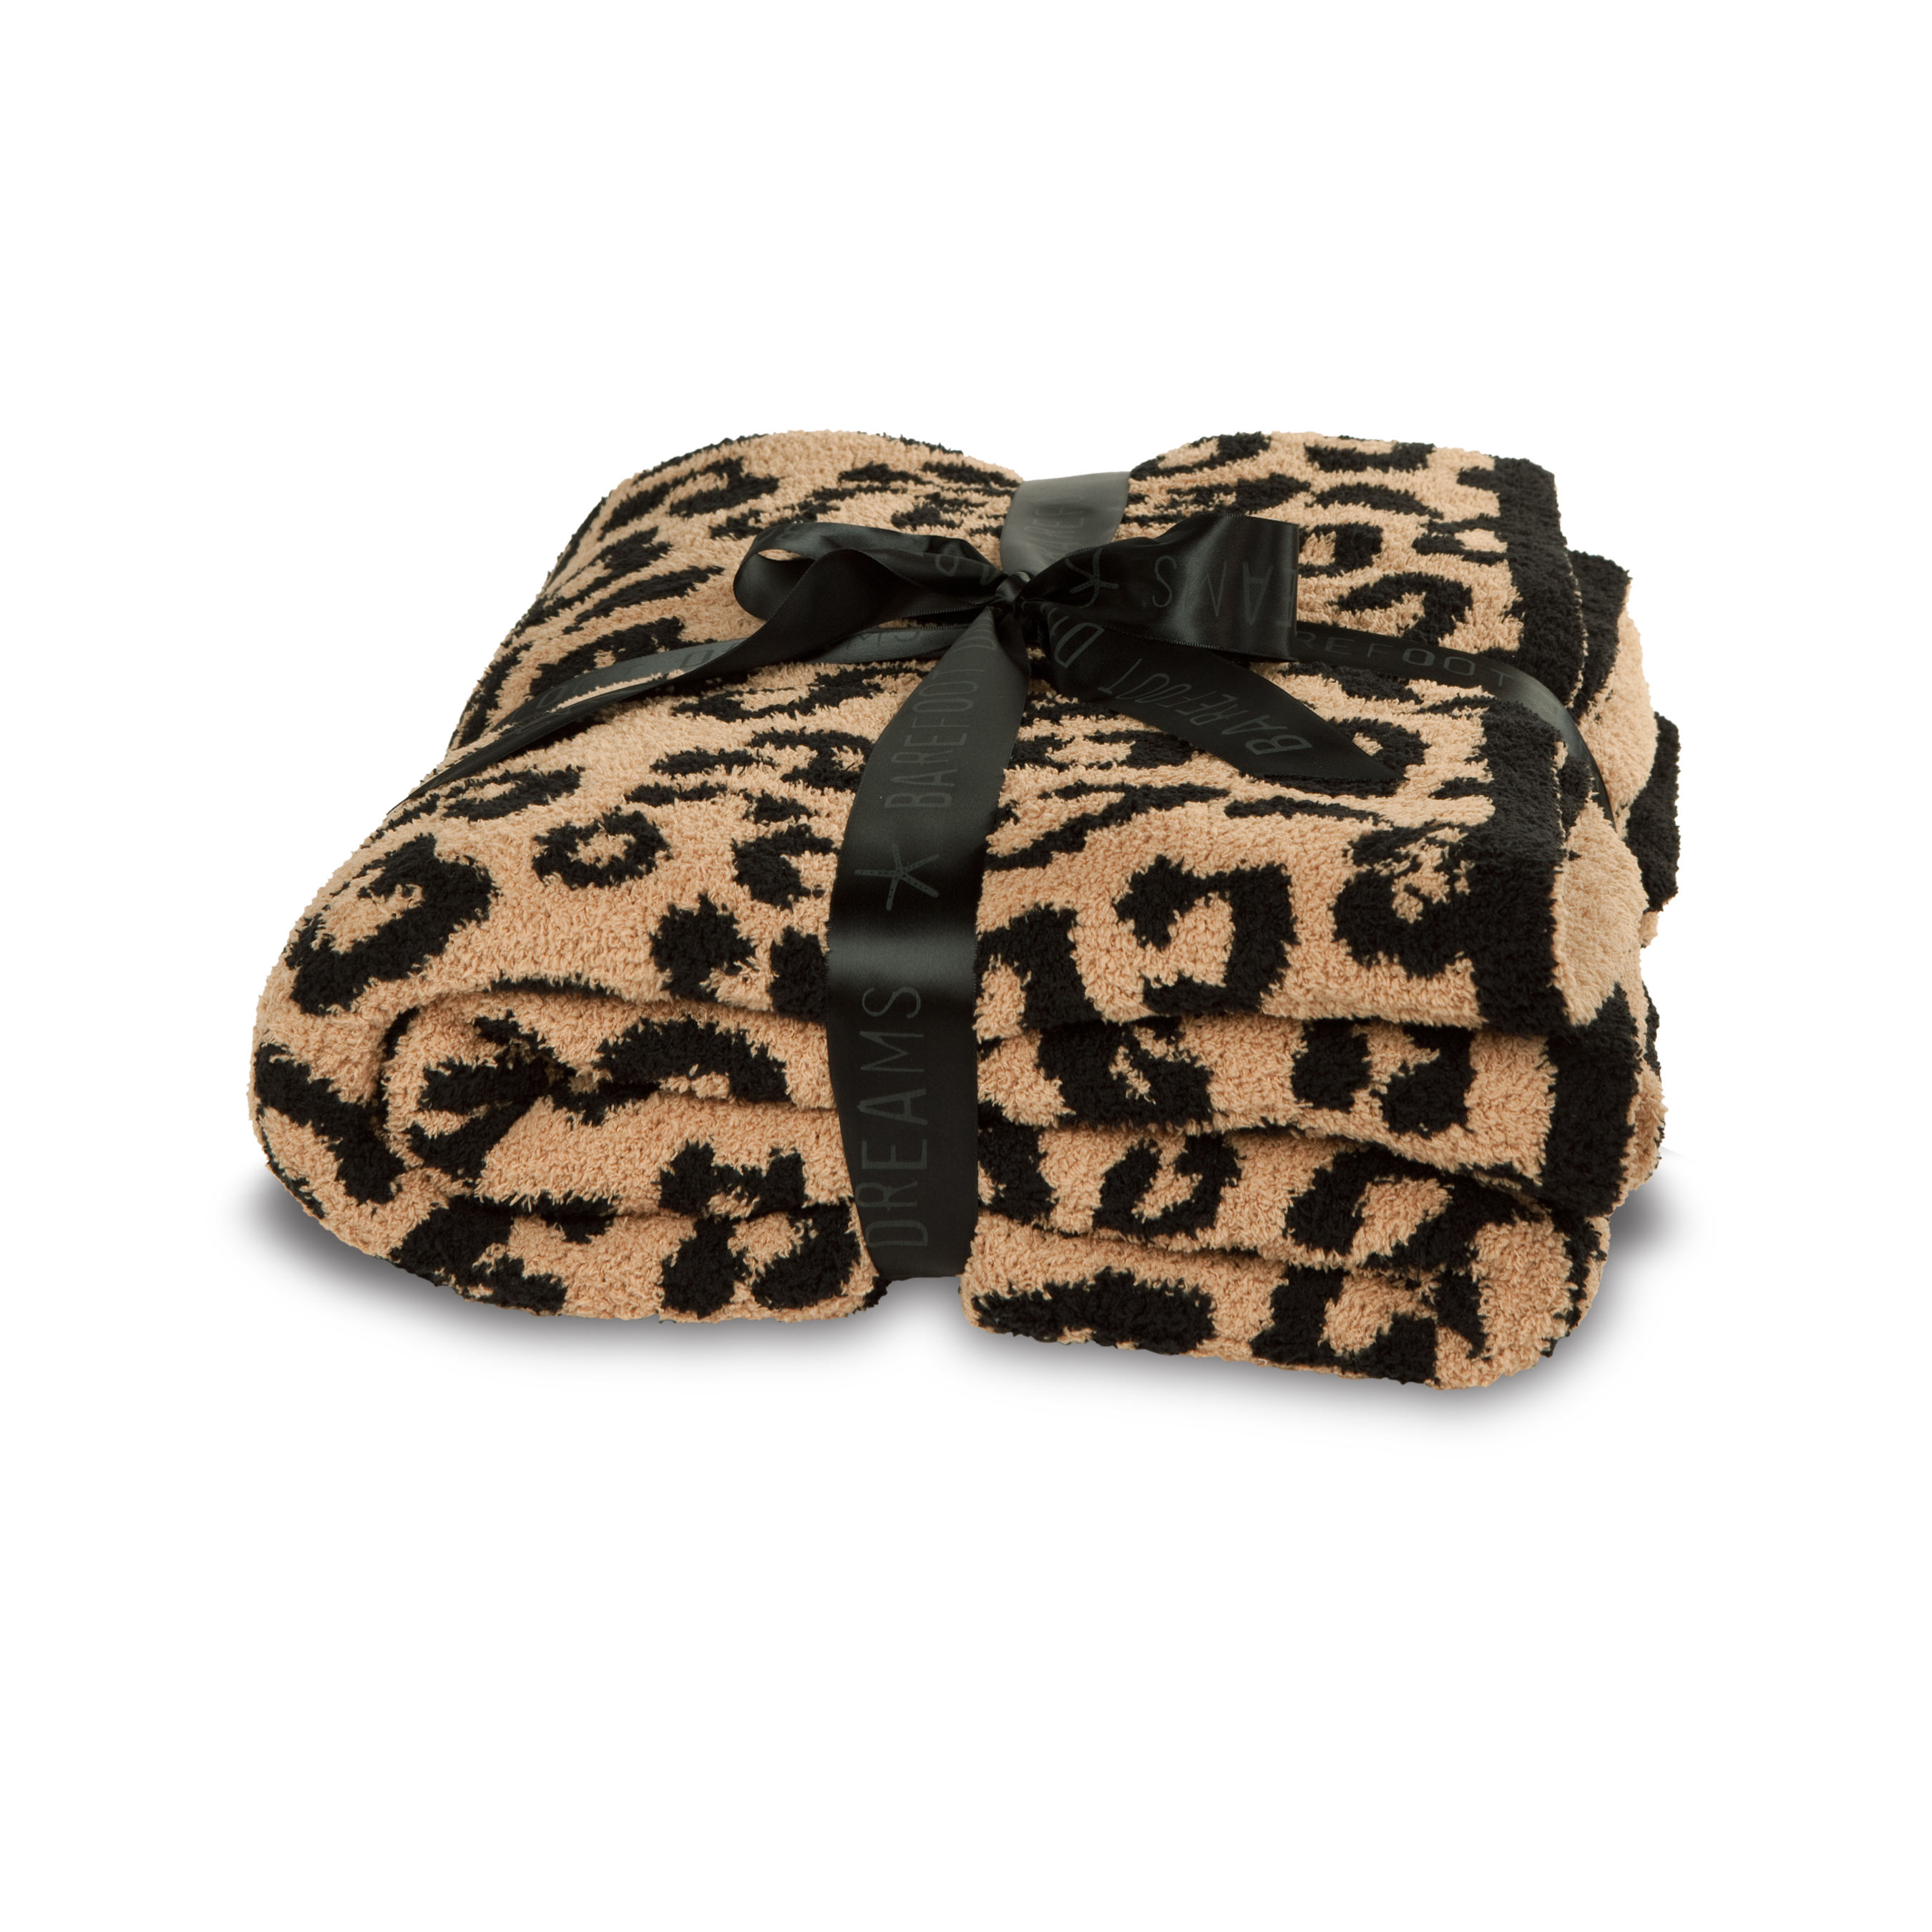 Barefoot Dreams top sell zero defect super soft 100% polyester microfiber feather yarn leopard zebra jacquard knit throw blanket